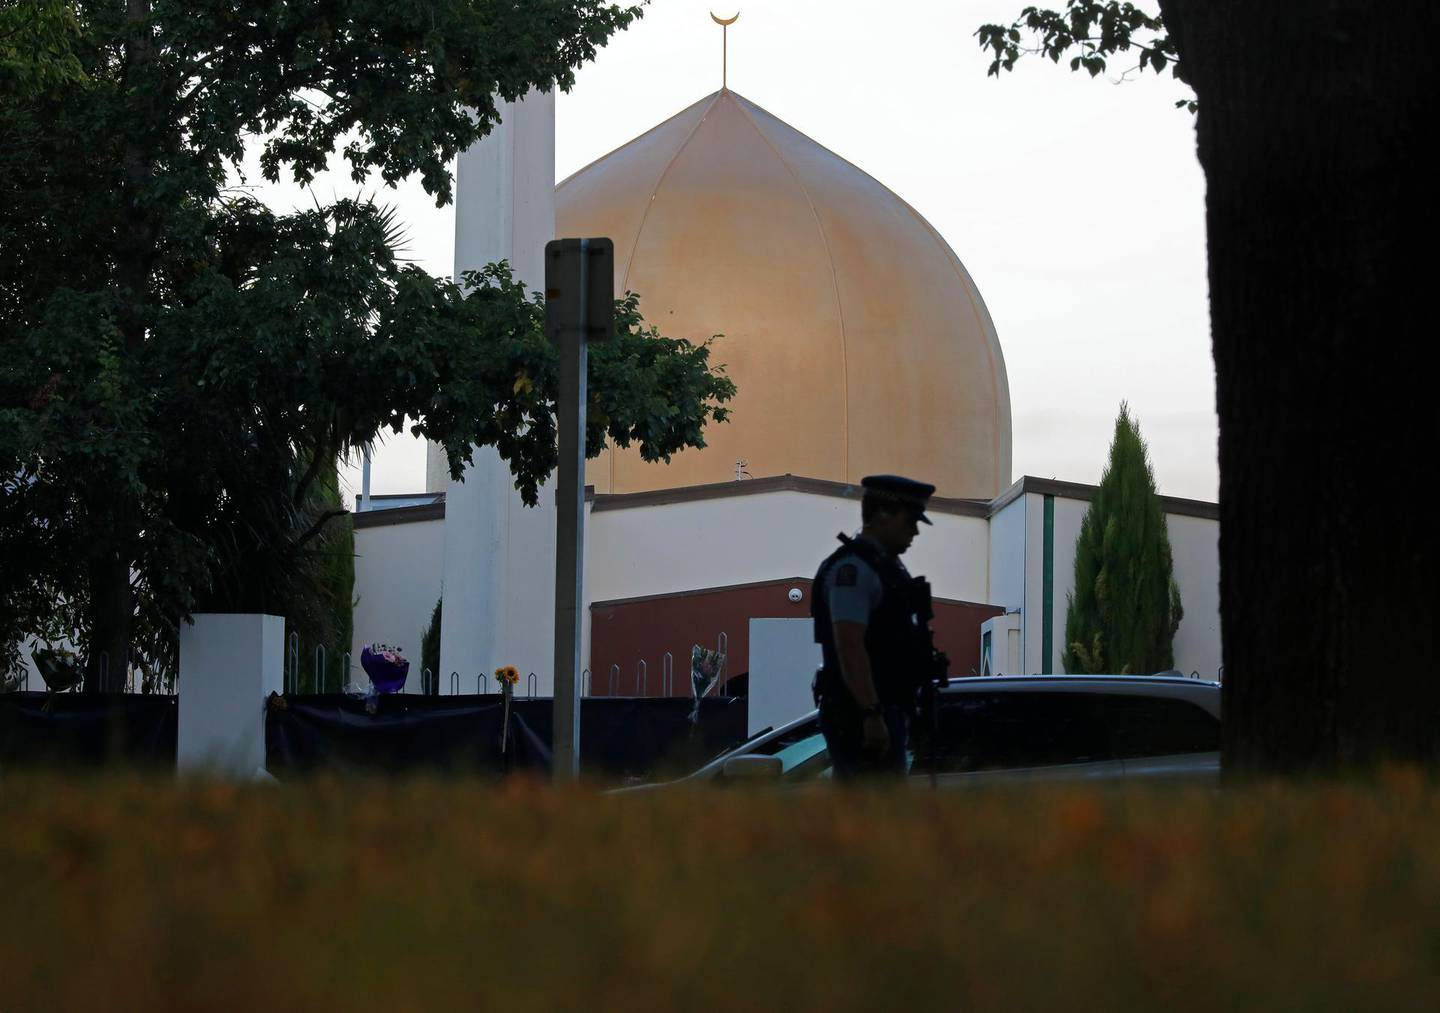 FILE - In this March 17, 2019, file photo, a police officer stands guard in front of the Al Noor mosque in Christchurch, New Zealand. The man authorities believe carried out the Christchurch mosque attacks is due to make his second court appearance via video link on Friday, April 4, 2019, although media photographs won't be allowed and reporting on the proceedings will be limited by New Zealand law. Fifty people died in the March 15 attacks on two mosques (AP Photo/Vincent Yu, File)